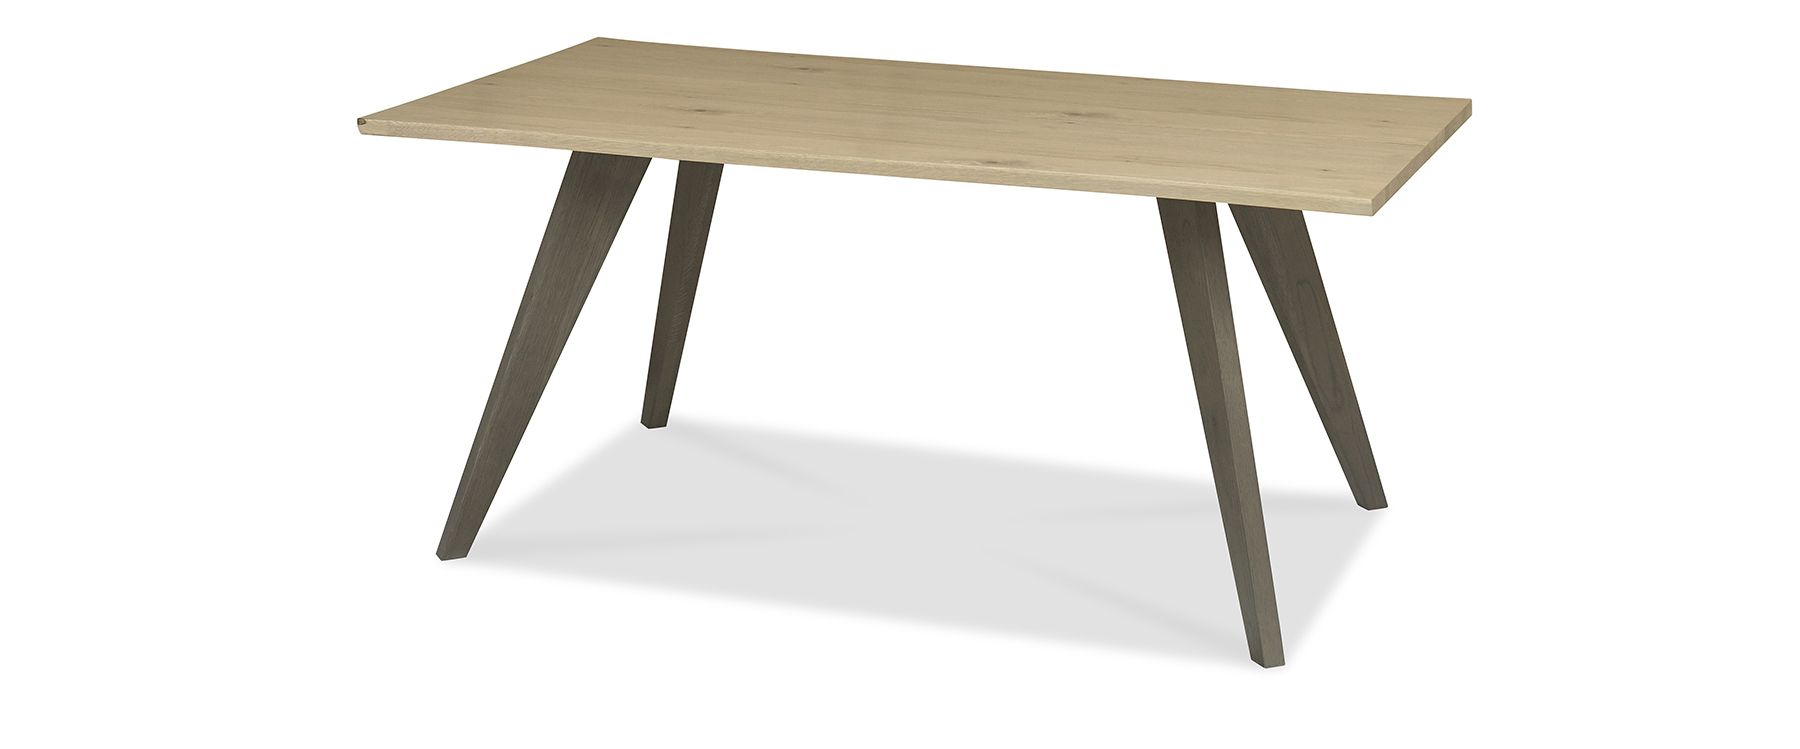 CARELL DINING TABLE - L180cm x D96cm xH77cm - ANGLE DETAIL